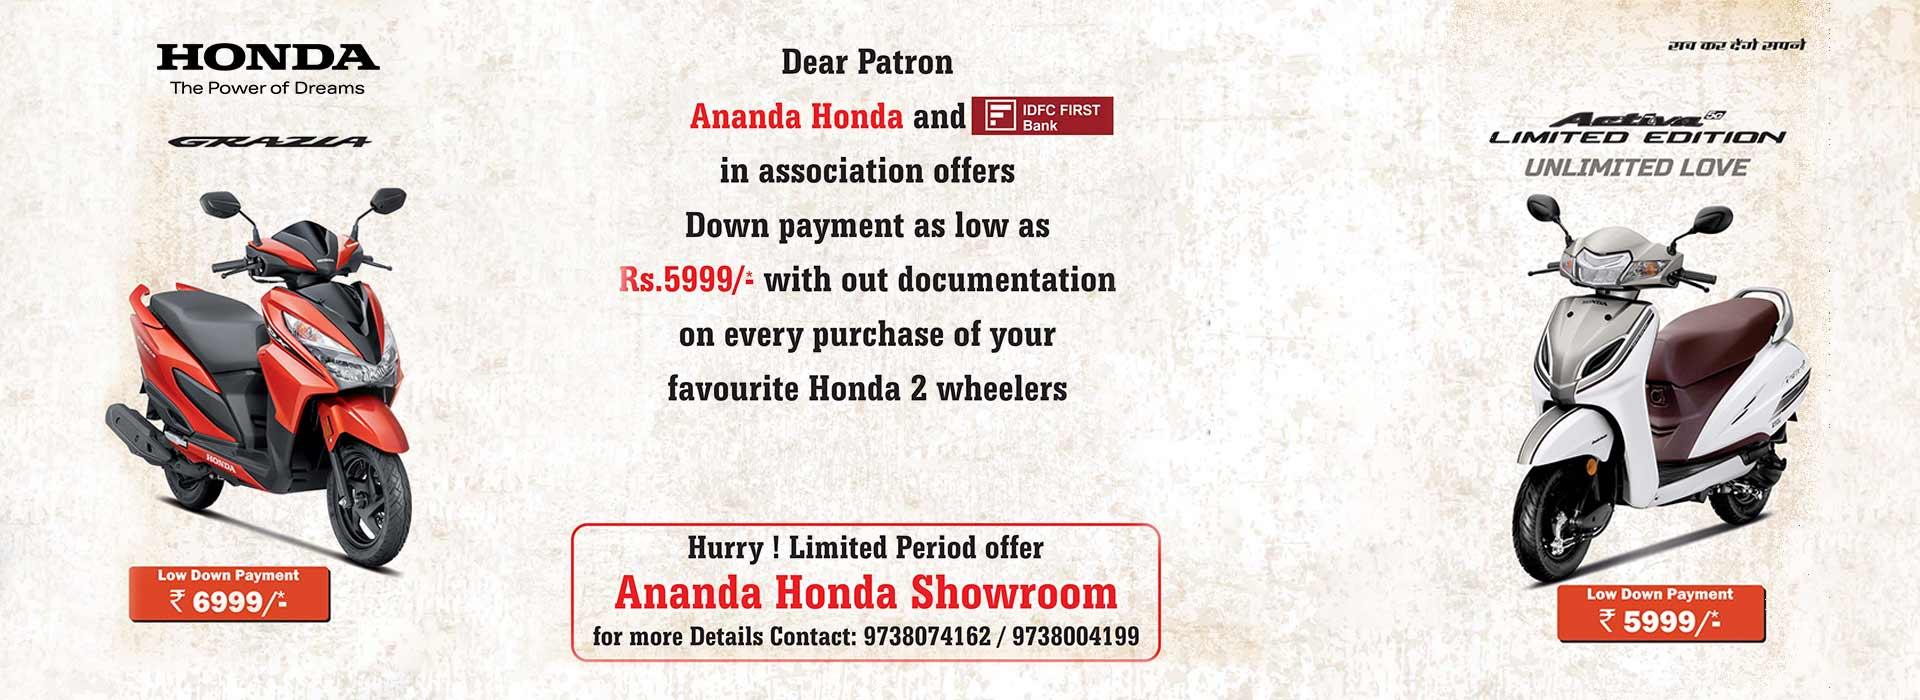 Ananda Honda: Authorized bike dealership serving and servicing in